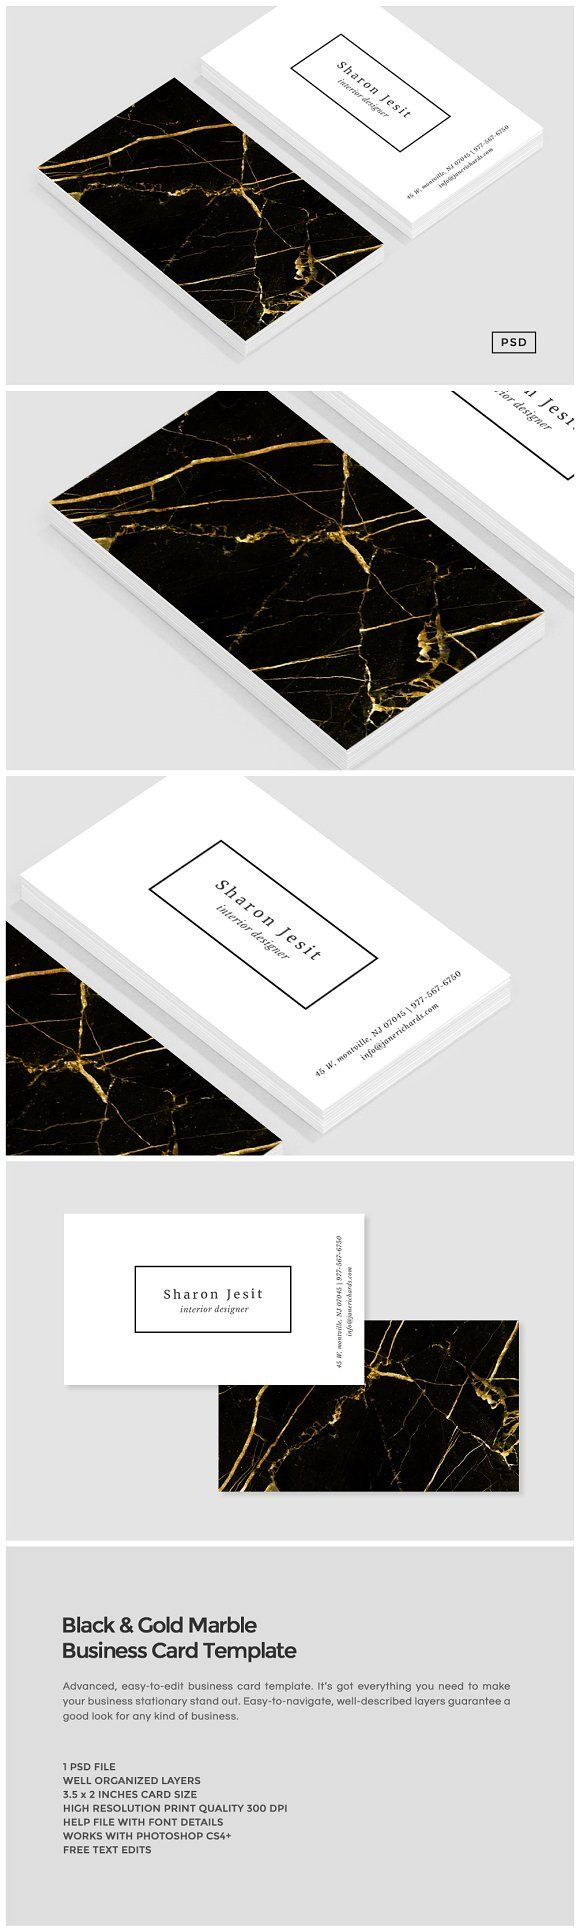 Black & Gold Marble Business Card by The Design Label on @creativemarket